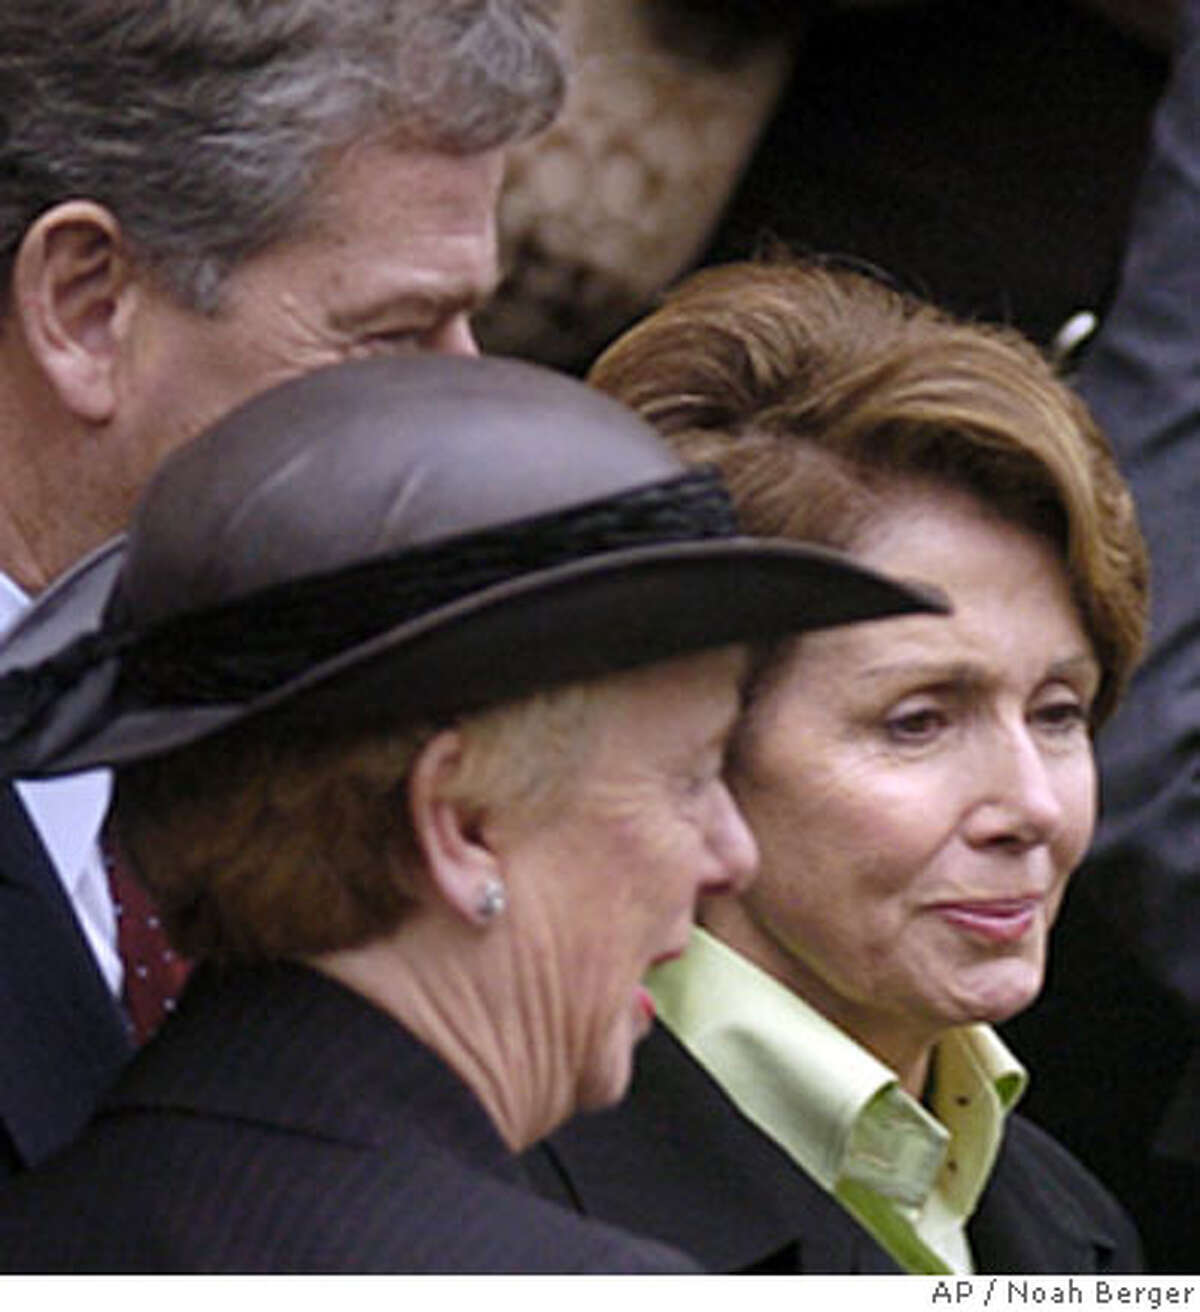 House Speaker Nancy Pelosi, right, leaves the funeral of Leo McCarthy, former speaker of the California Assembly and three term lieutenant governor, with his widow, Jackie McCarthy, on Friday, Feb. 9, 2007, in San Francisco. (AP Photo/Noah Berger)